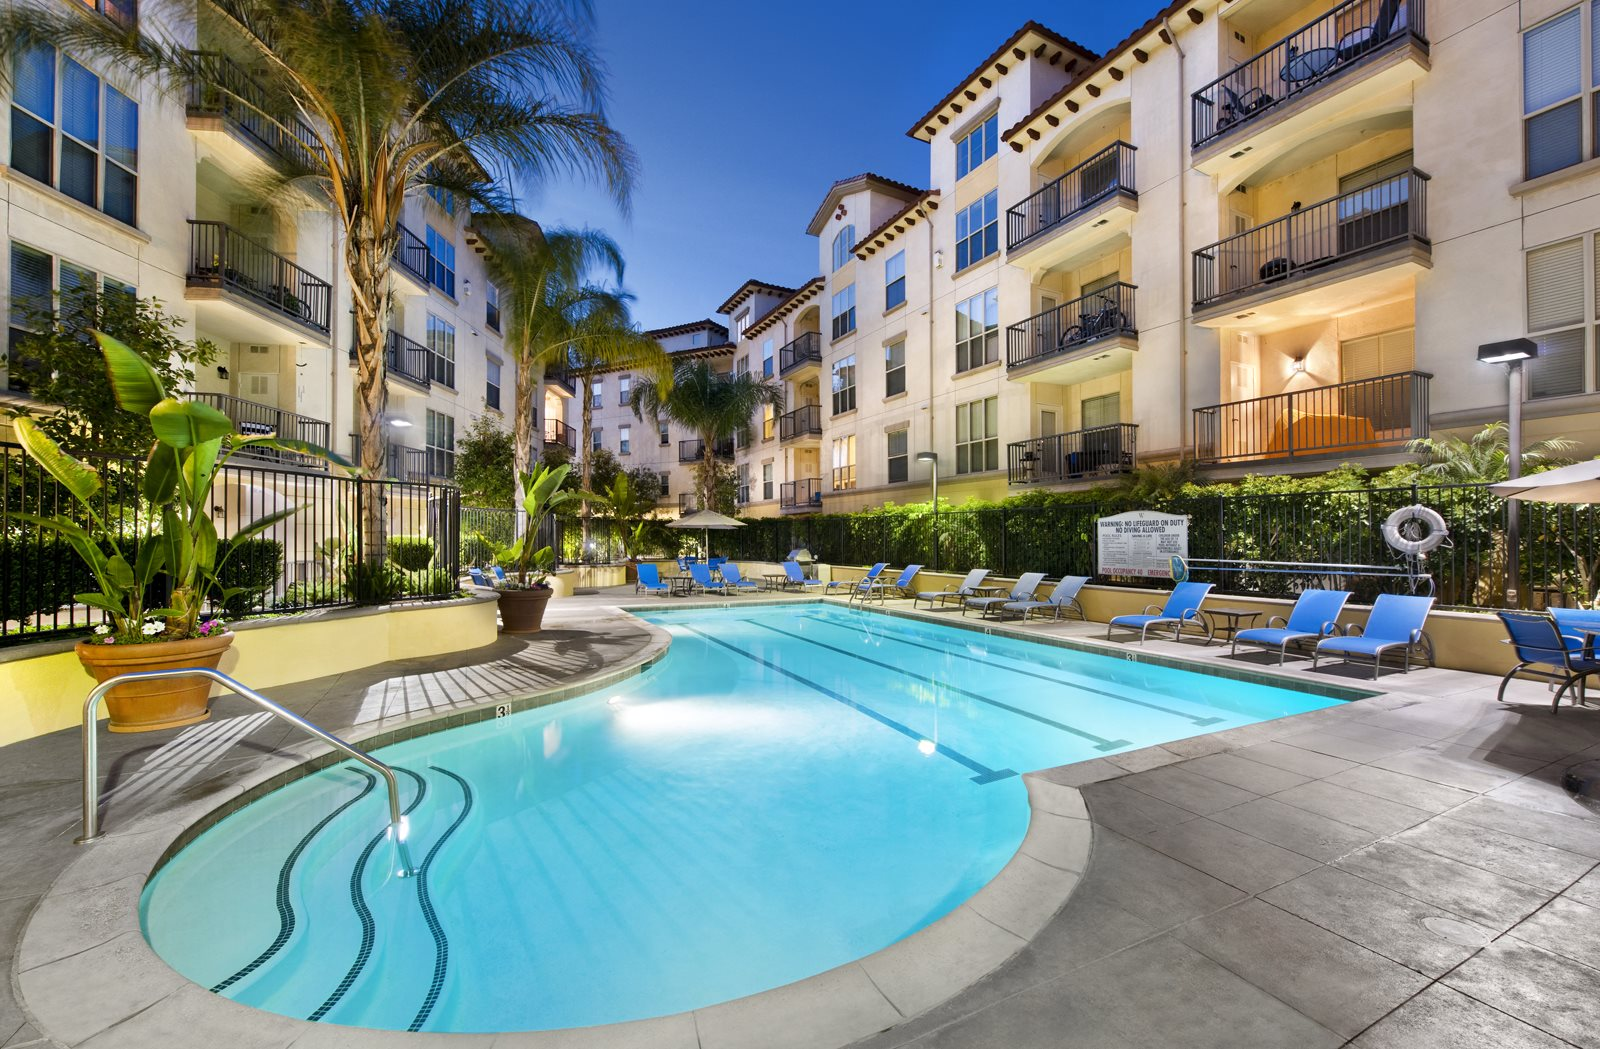 Pool Side Relaxing Area with Cabanas at Windsor Lofts at Universal City,CA, 91604